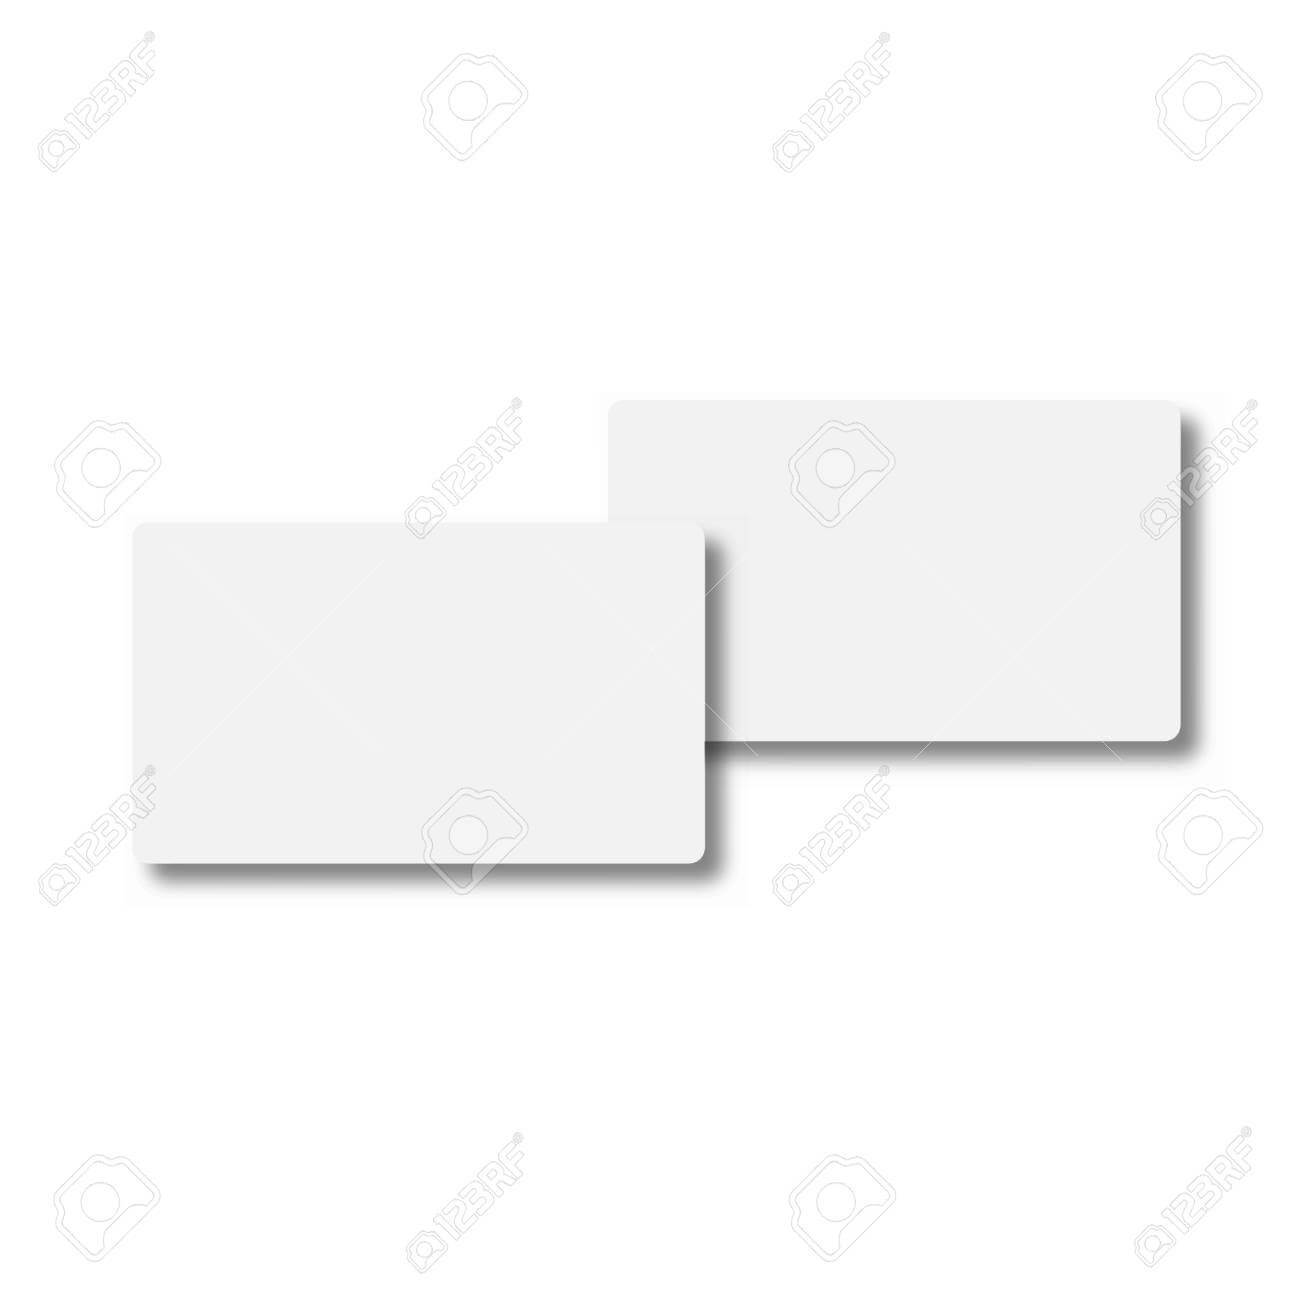 016 Blank Place Card Template Ideas Of Business Shocking In Place Card Template 6 Per Sheet